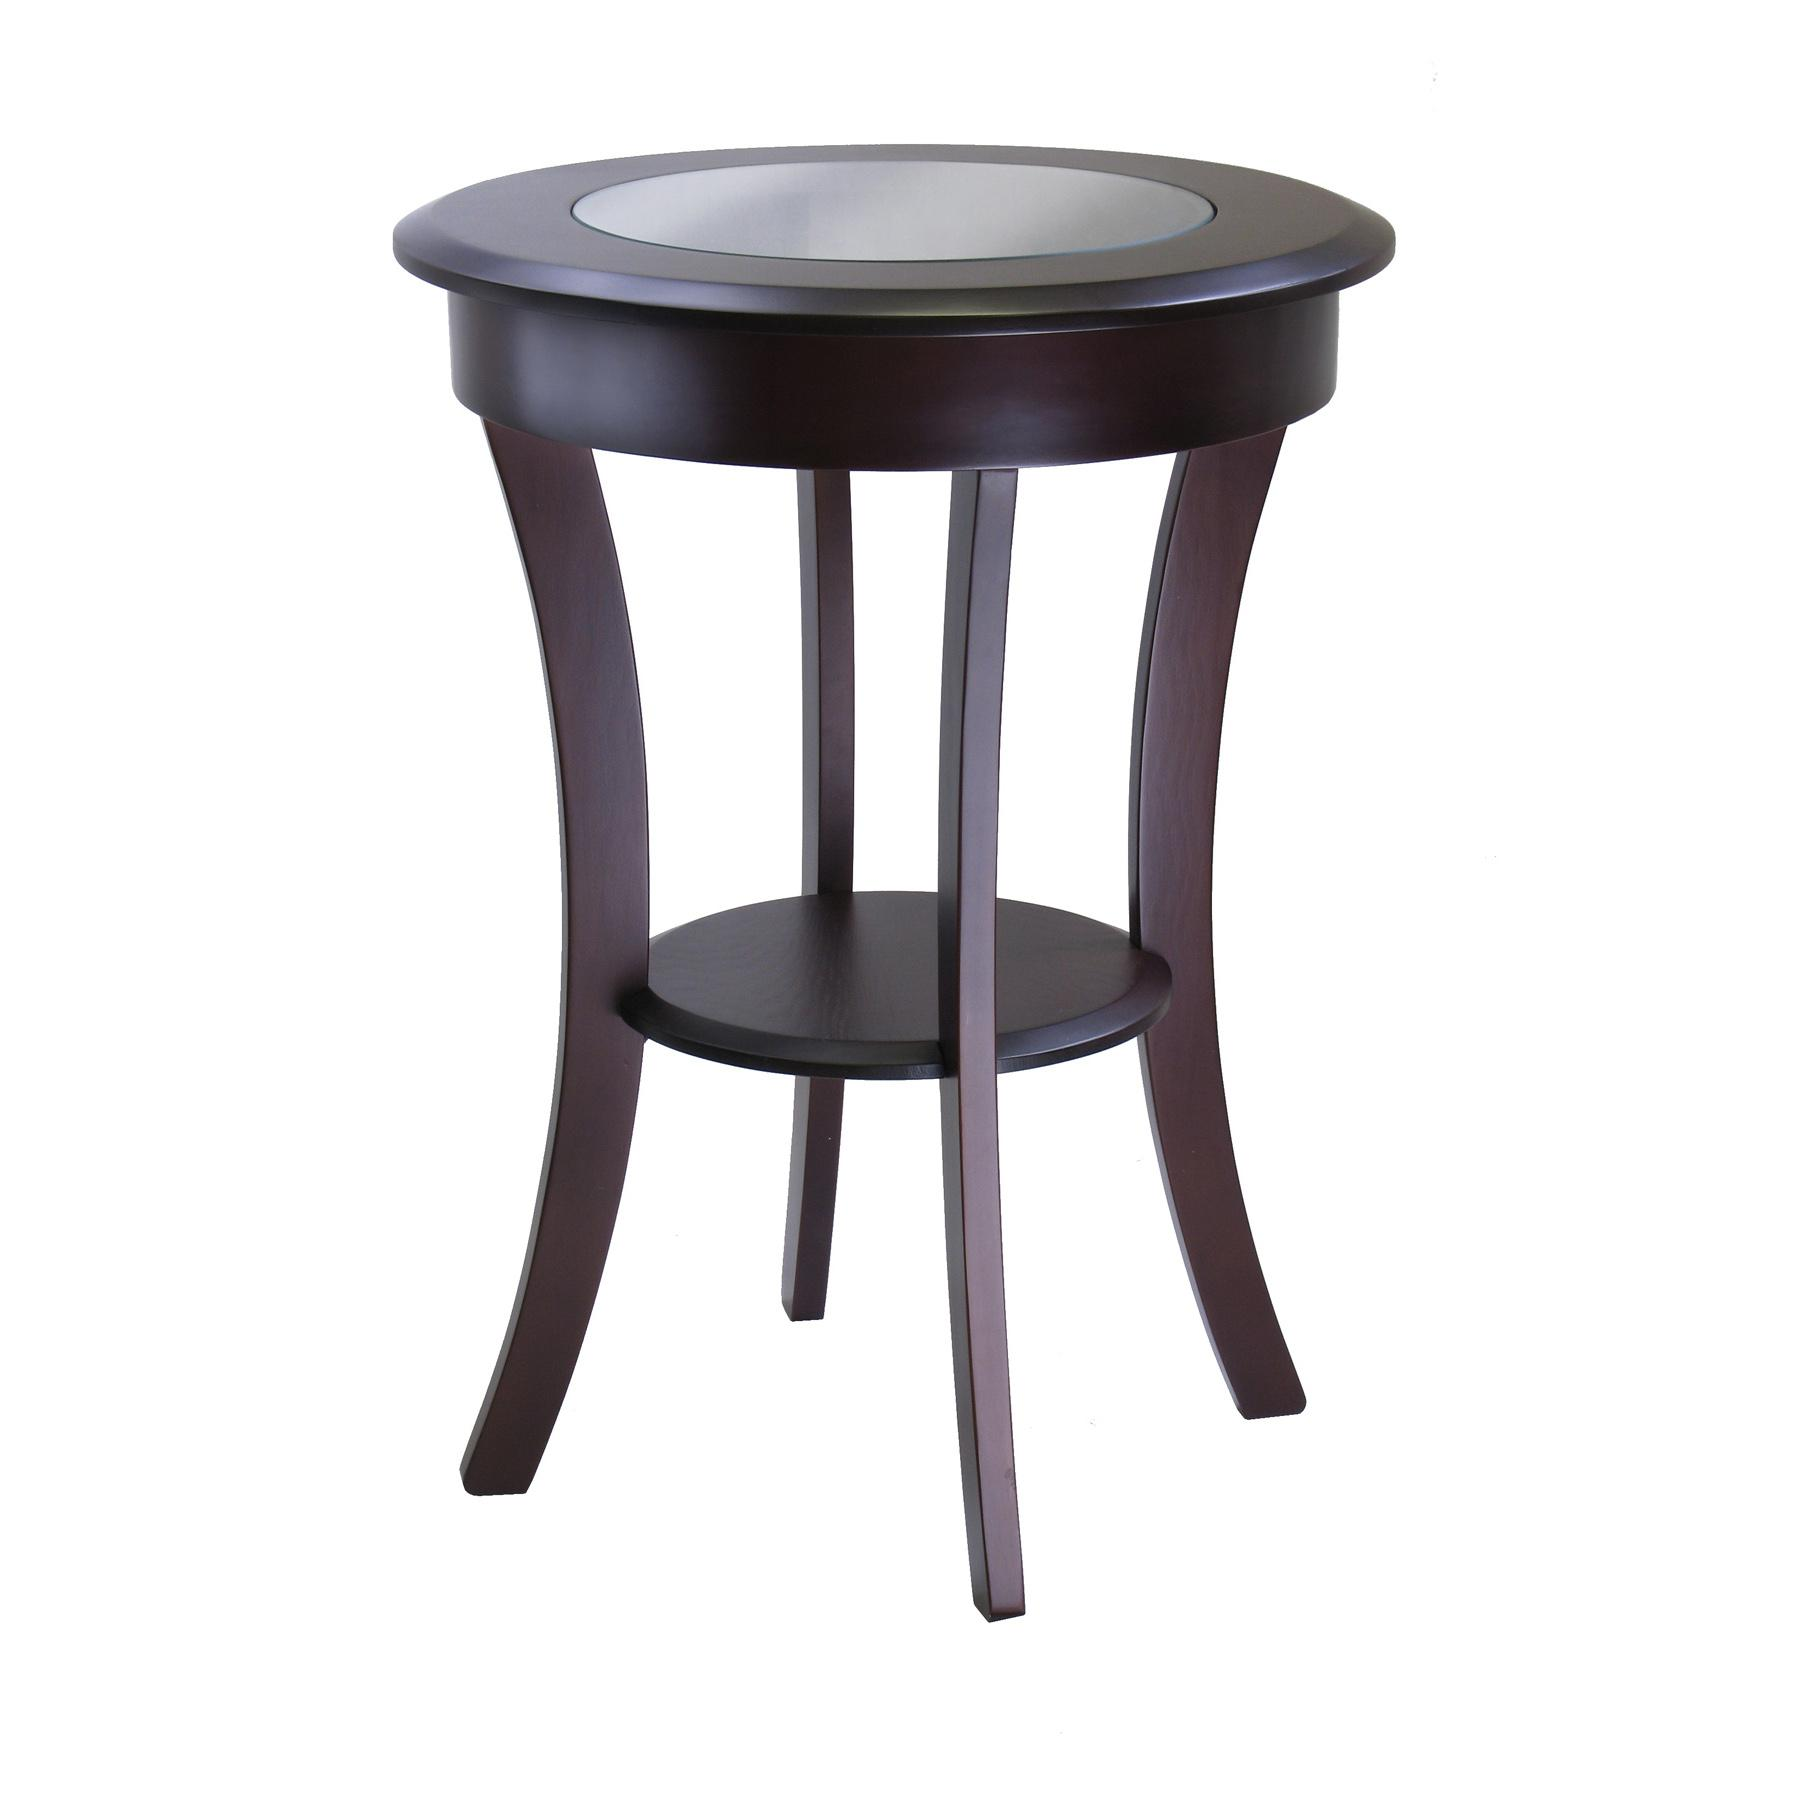 surprising inch tall round accent table decorating patio cover rentals chairs rent tablecloth and tables ideas small for stools covers kitchen full size wine rack lantern lamp